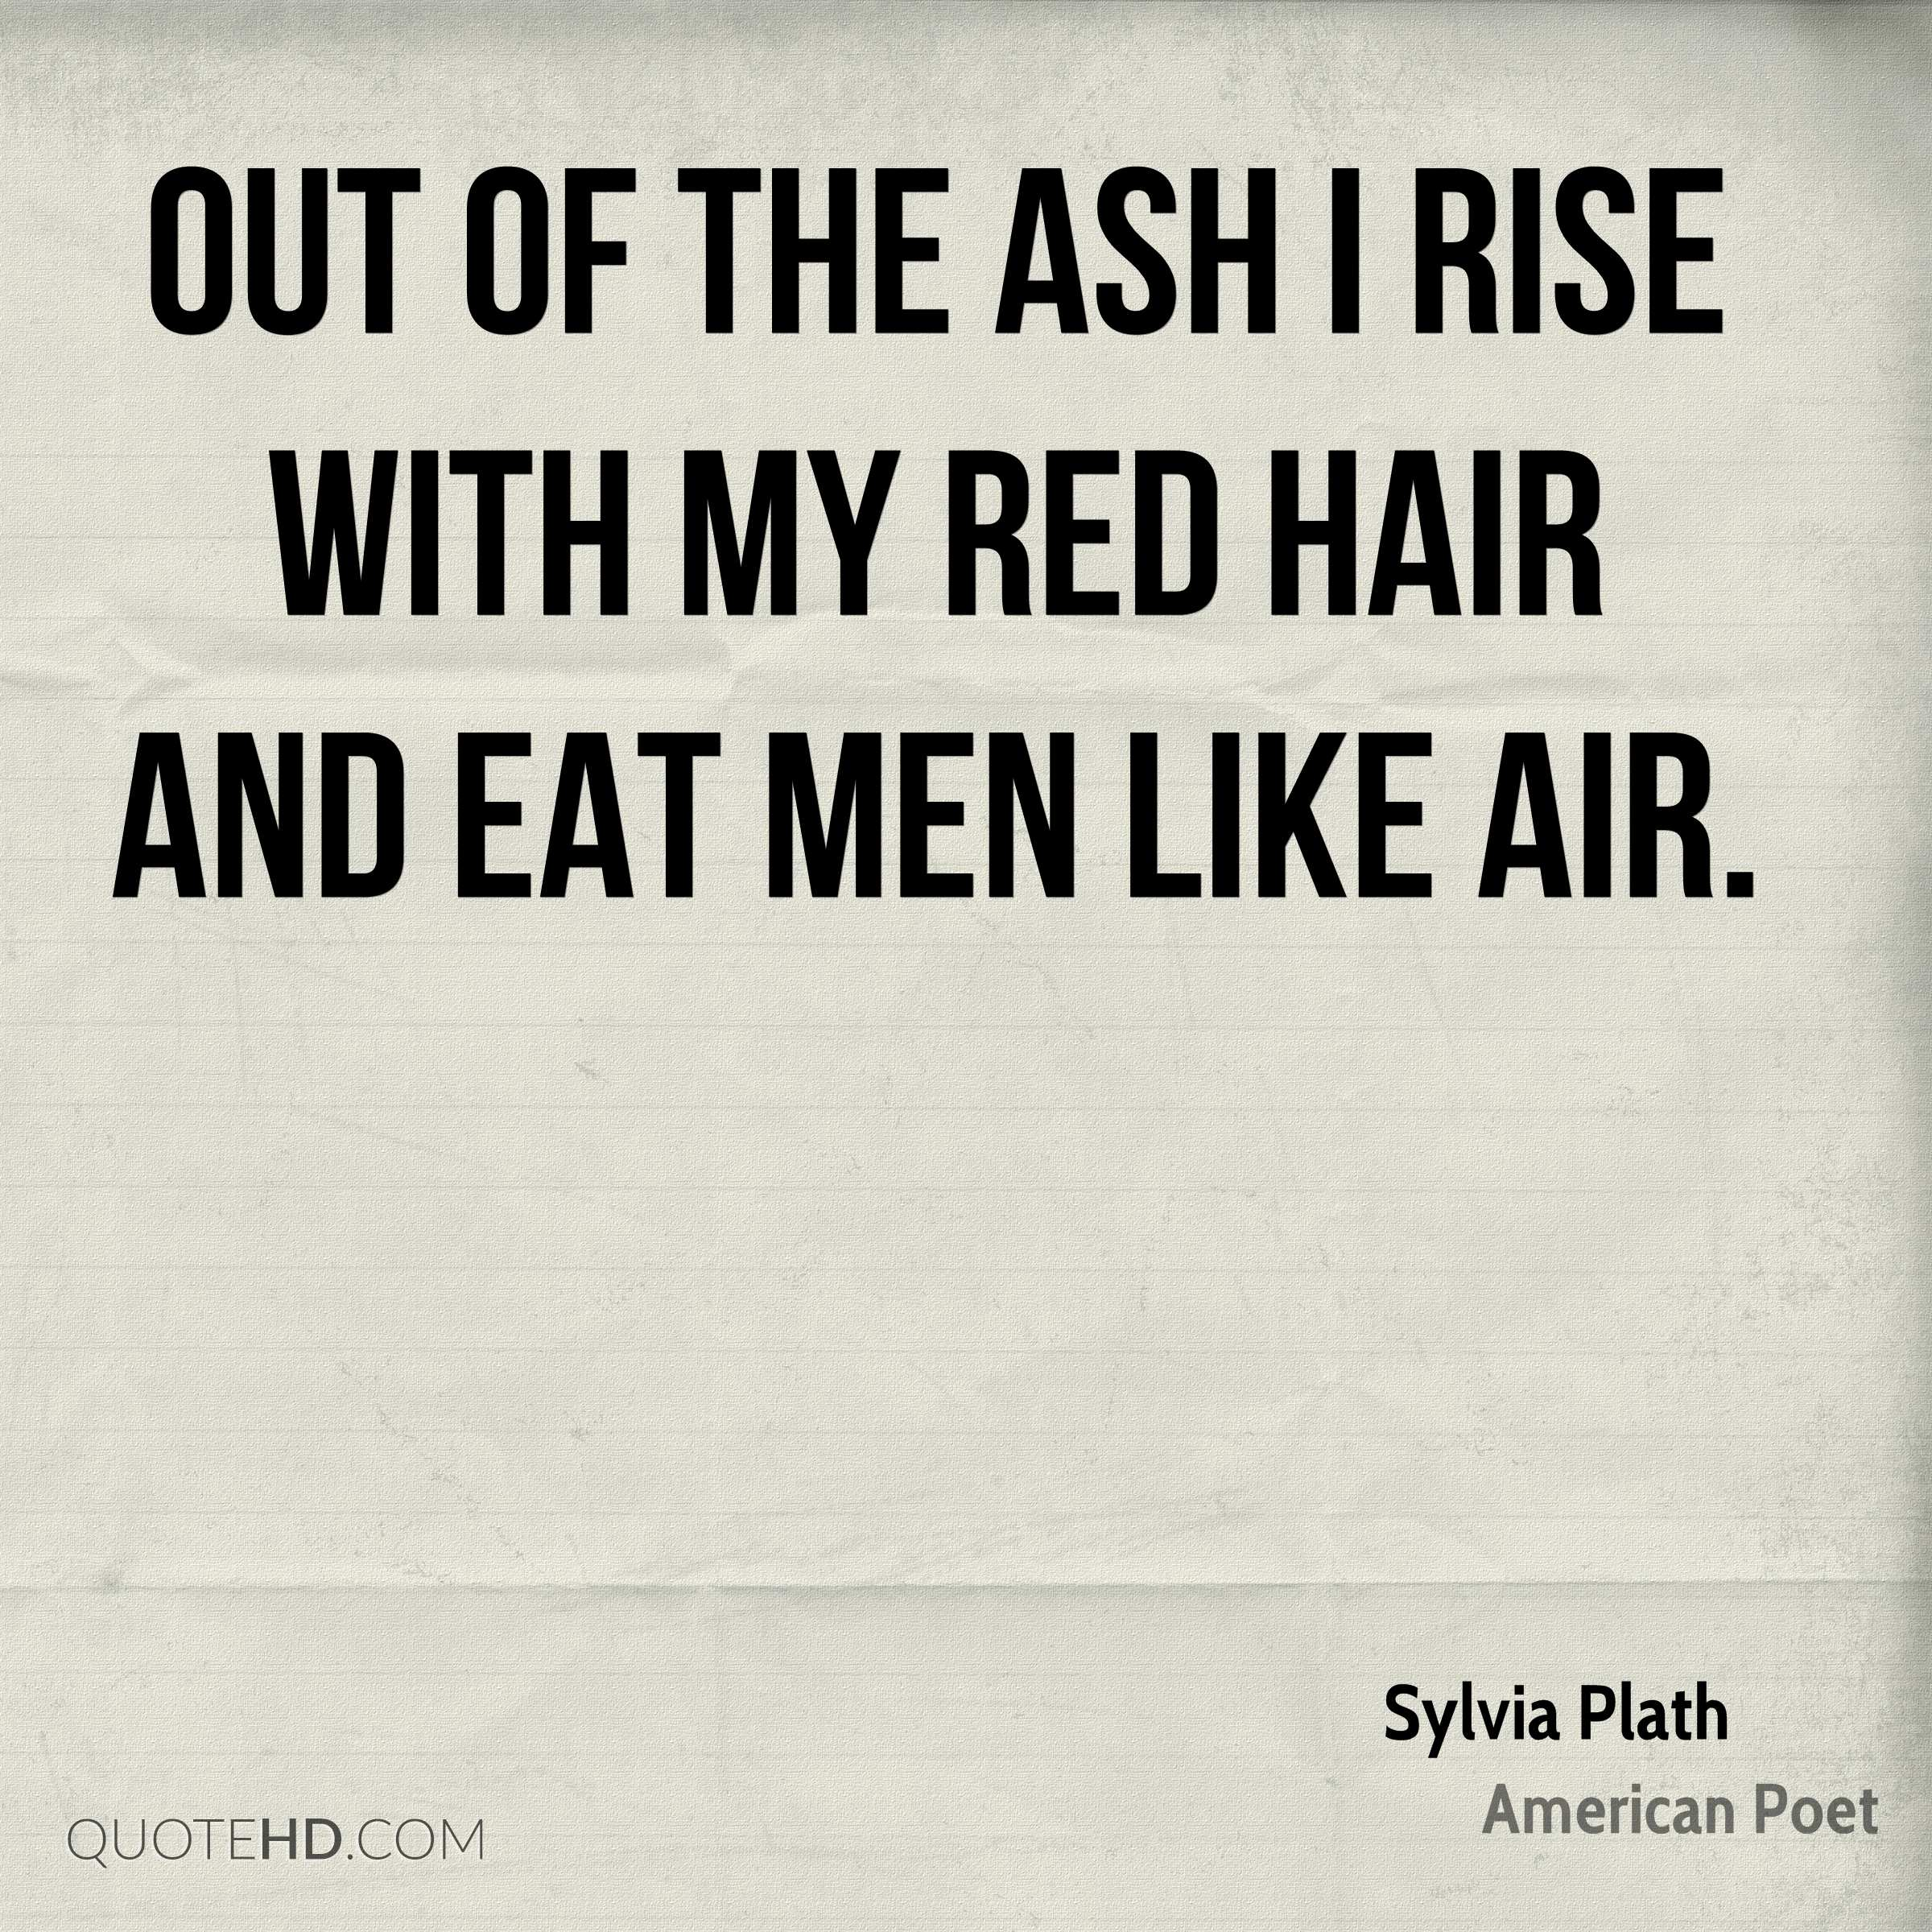 Out of the ash I rise with my red hair And eat men like air.